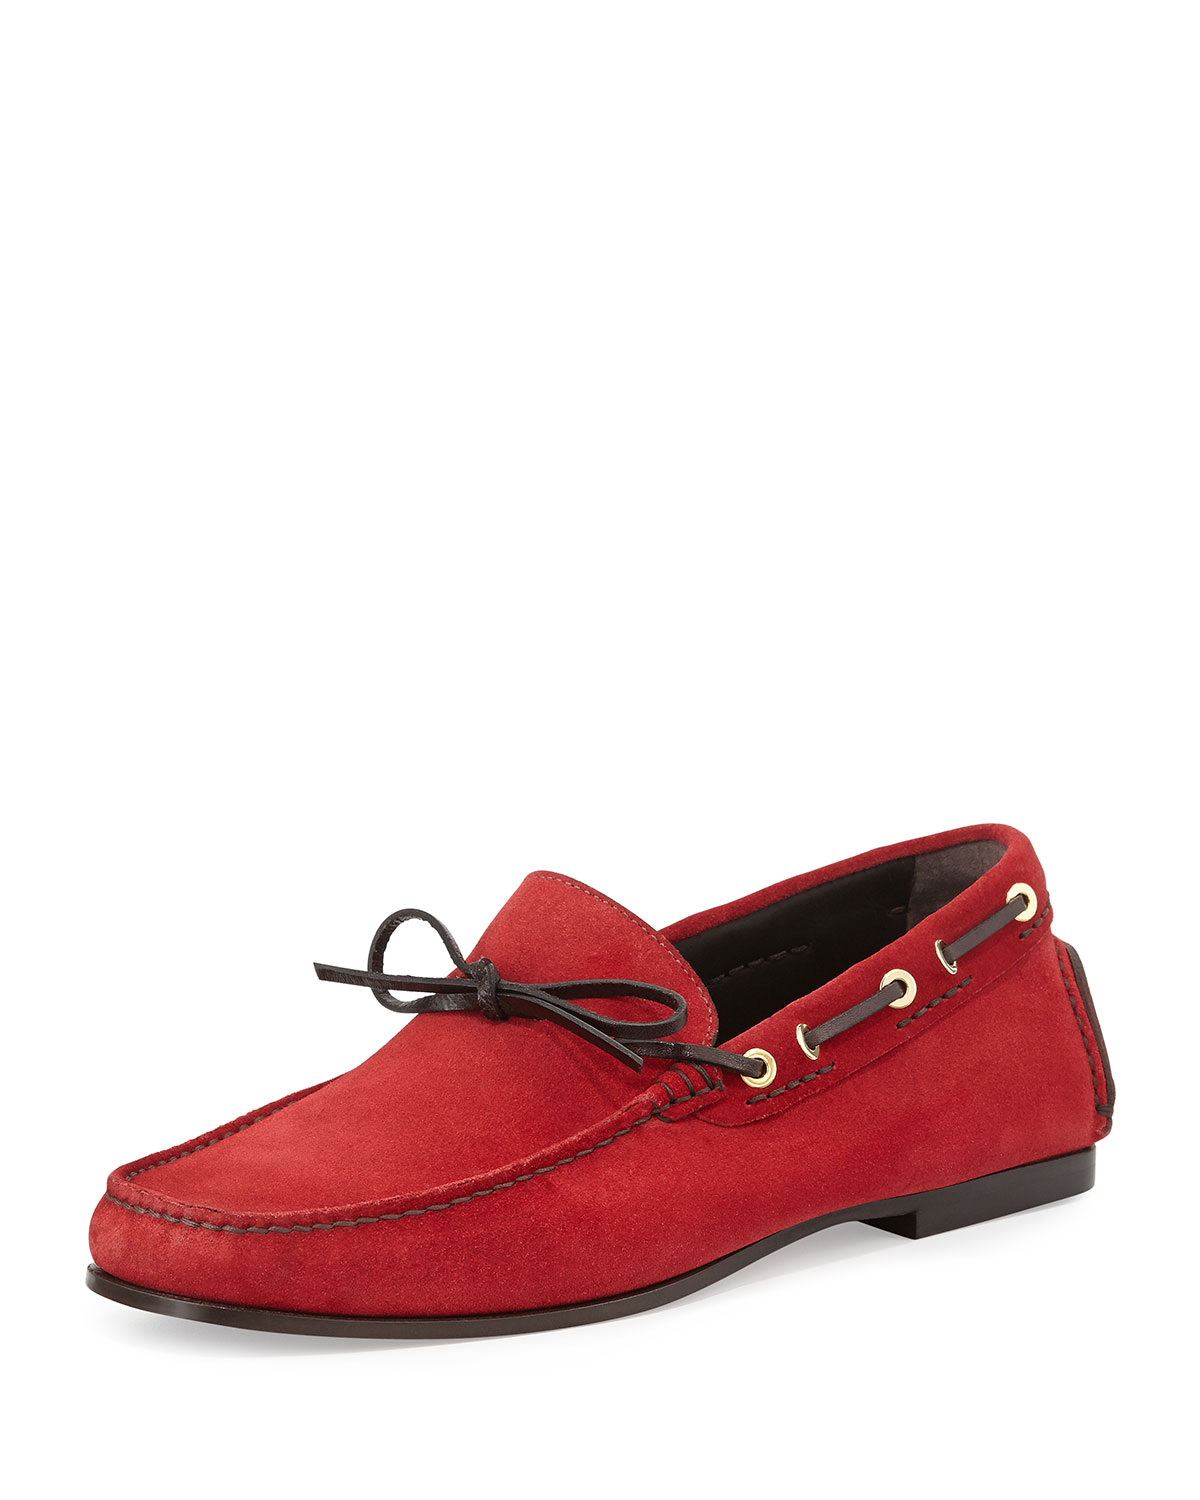 Tom Ford Crawford Suede Driving Loafer, Red